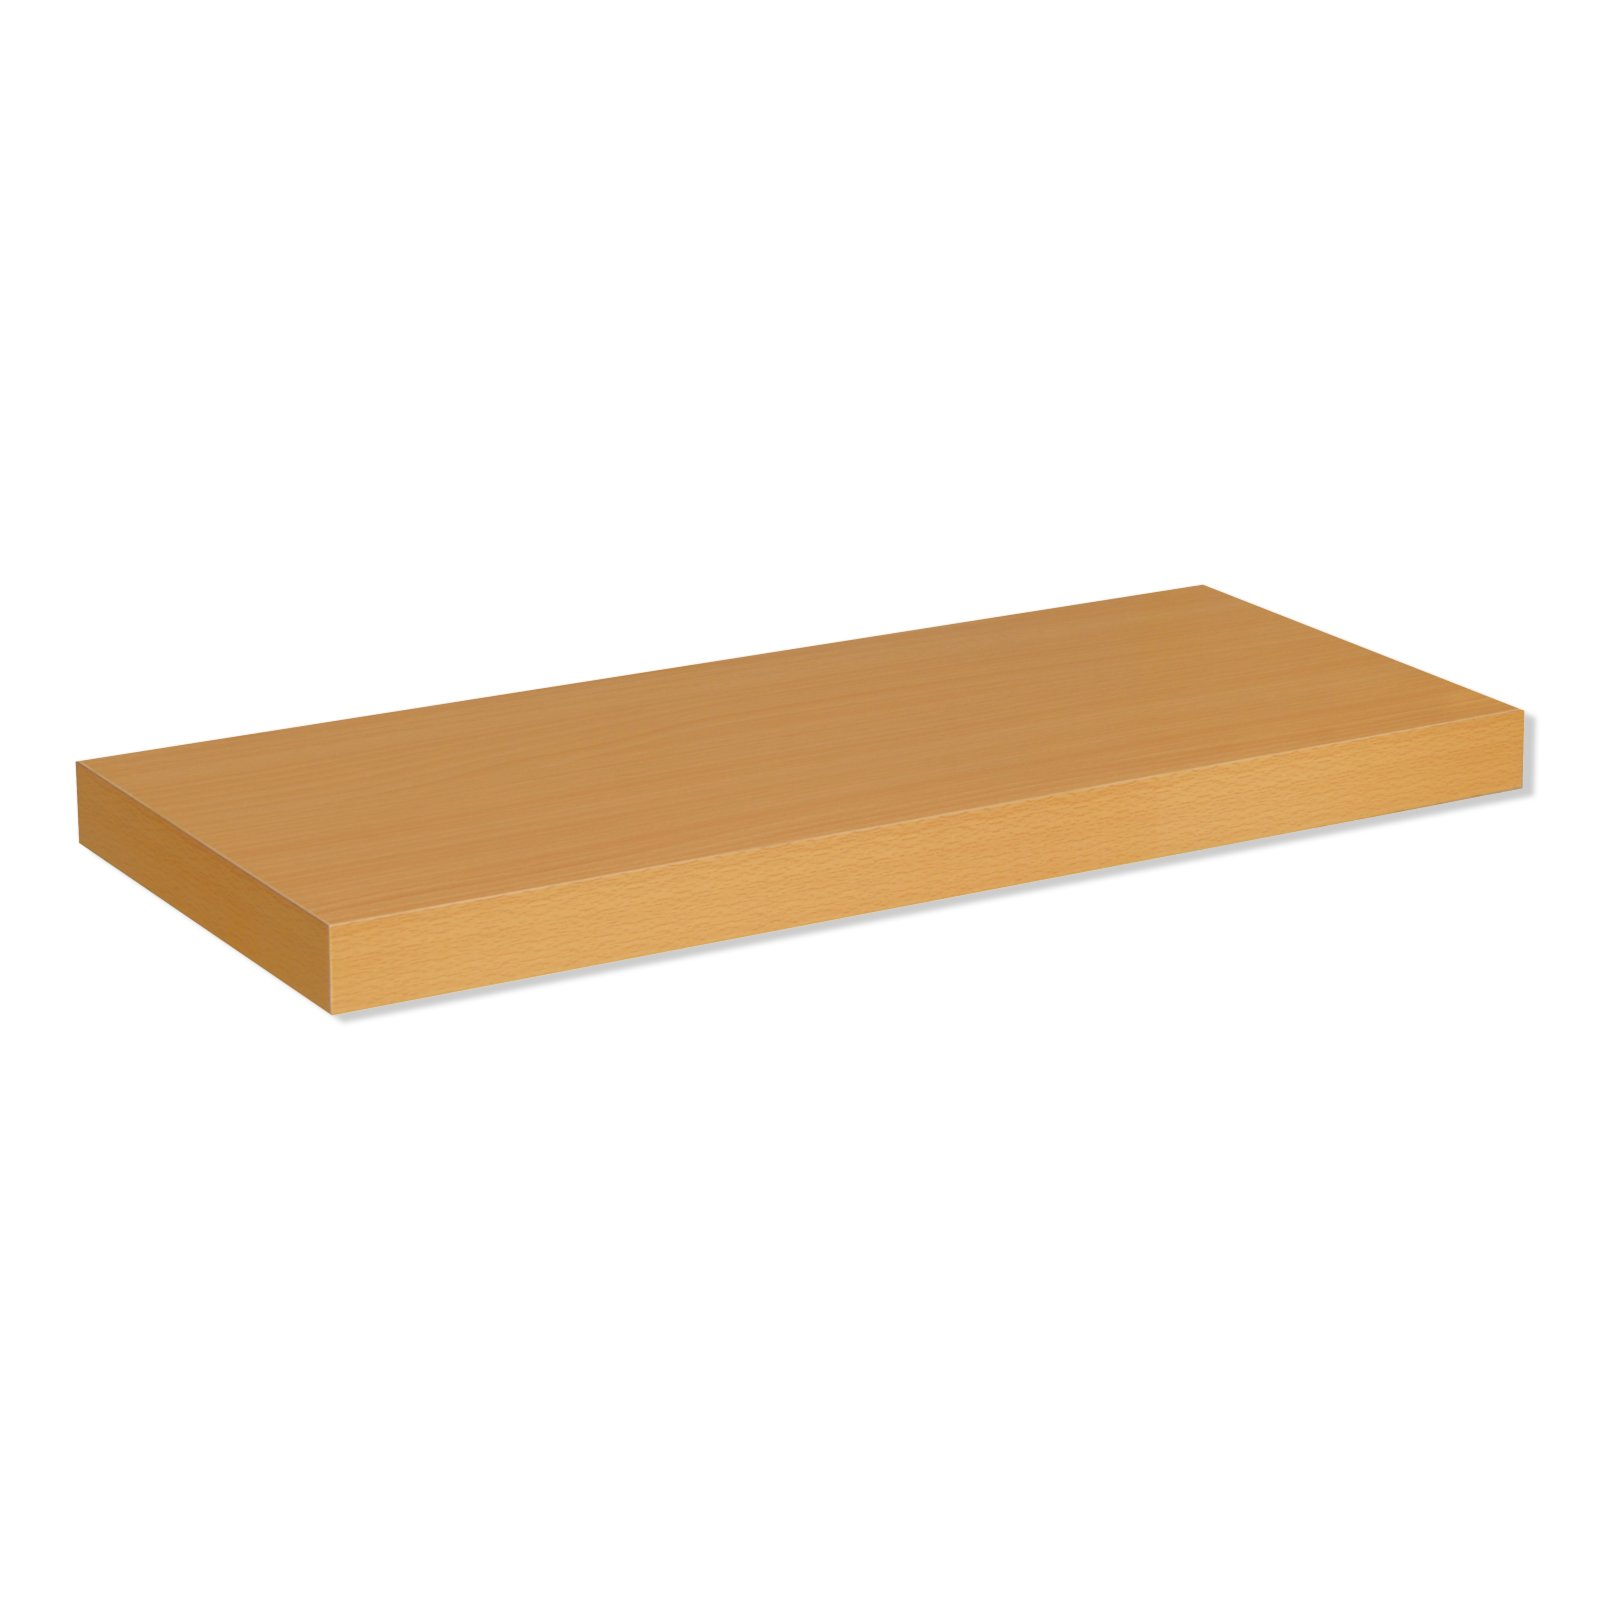 Wandregal Buche Wandregal Beech Buche 60 Cm Wandregale And Boards